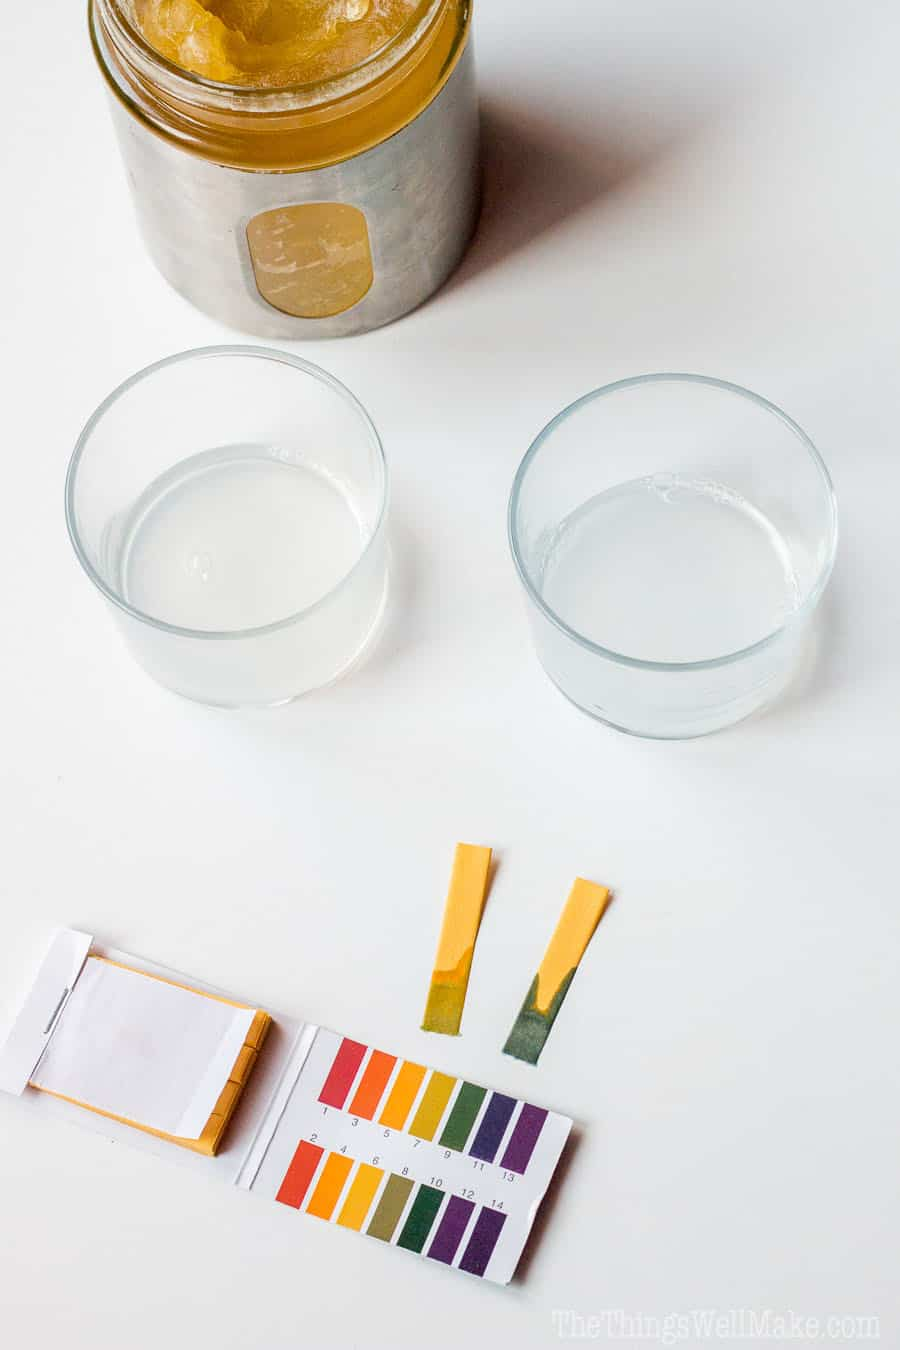 Are pH balanced soaps better for your skin? Learn to test the pH of your soap and how to neutralize liquid soaps if you need to.